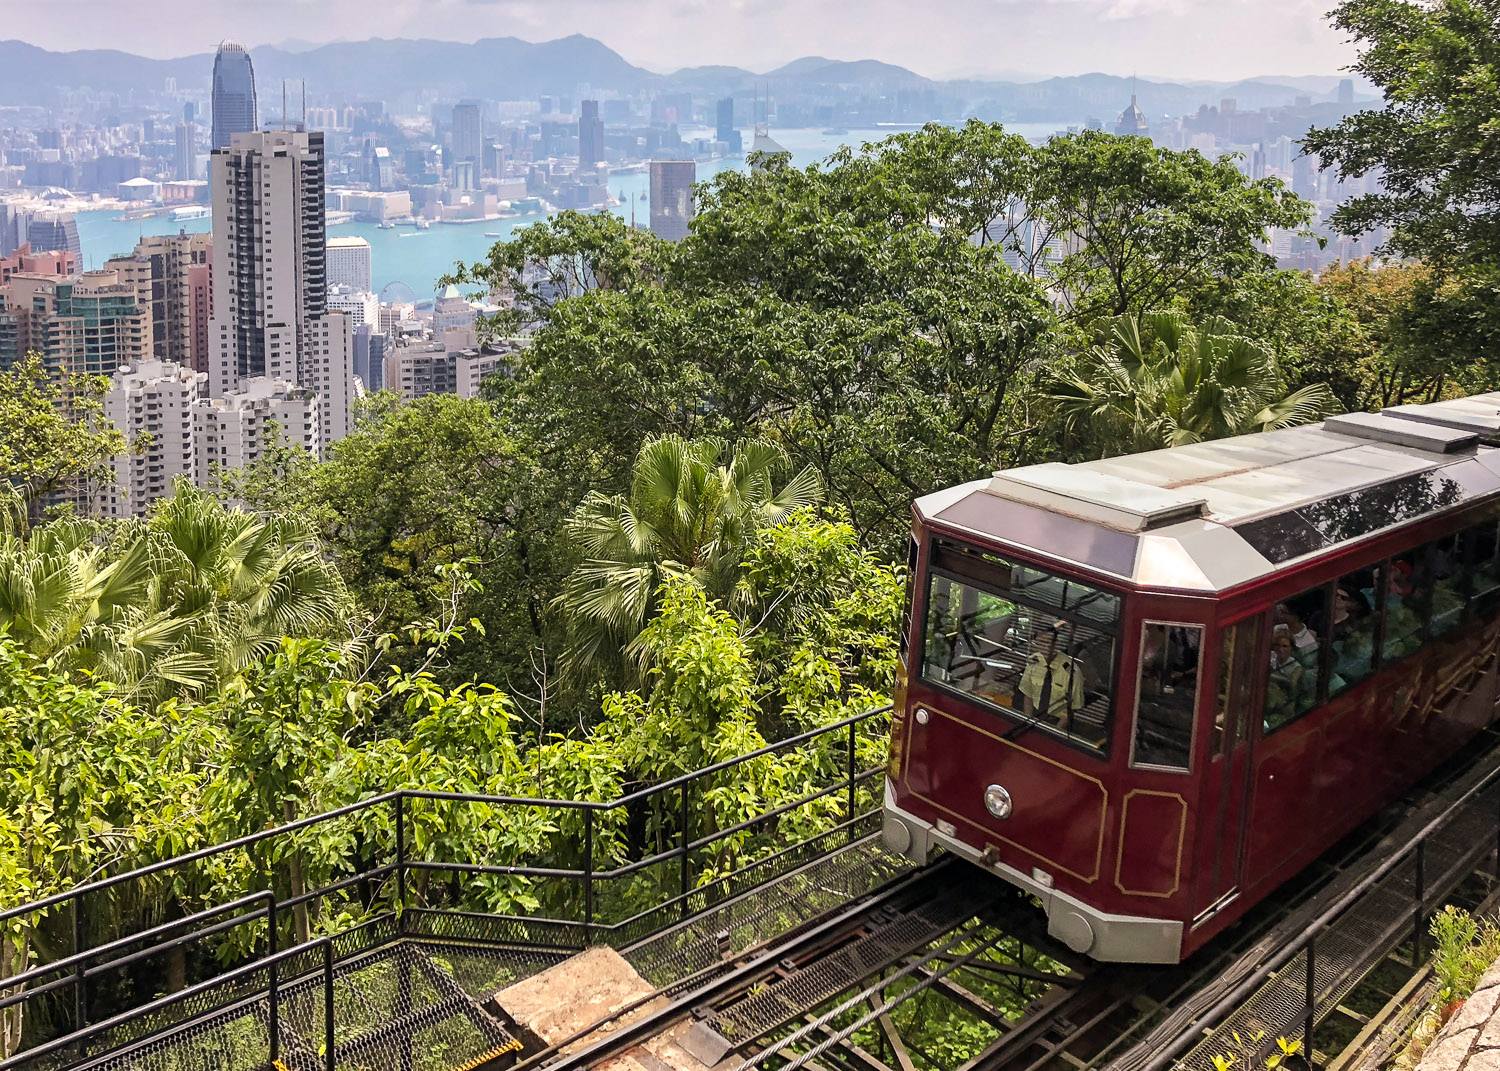 The Peak Tram climbing to Victoria Peak. Image:  © Nannette Holliday